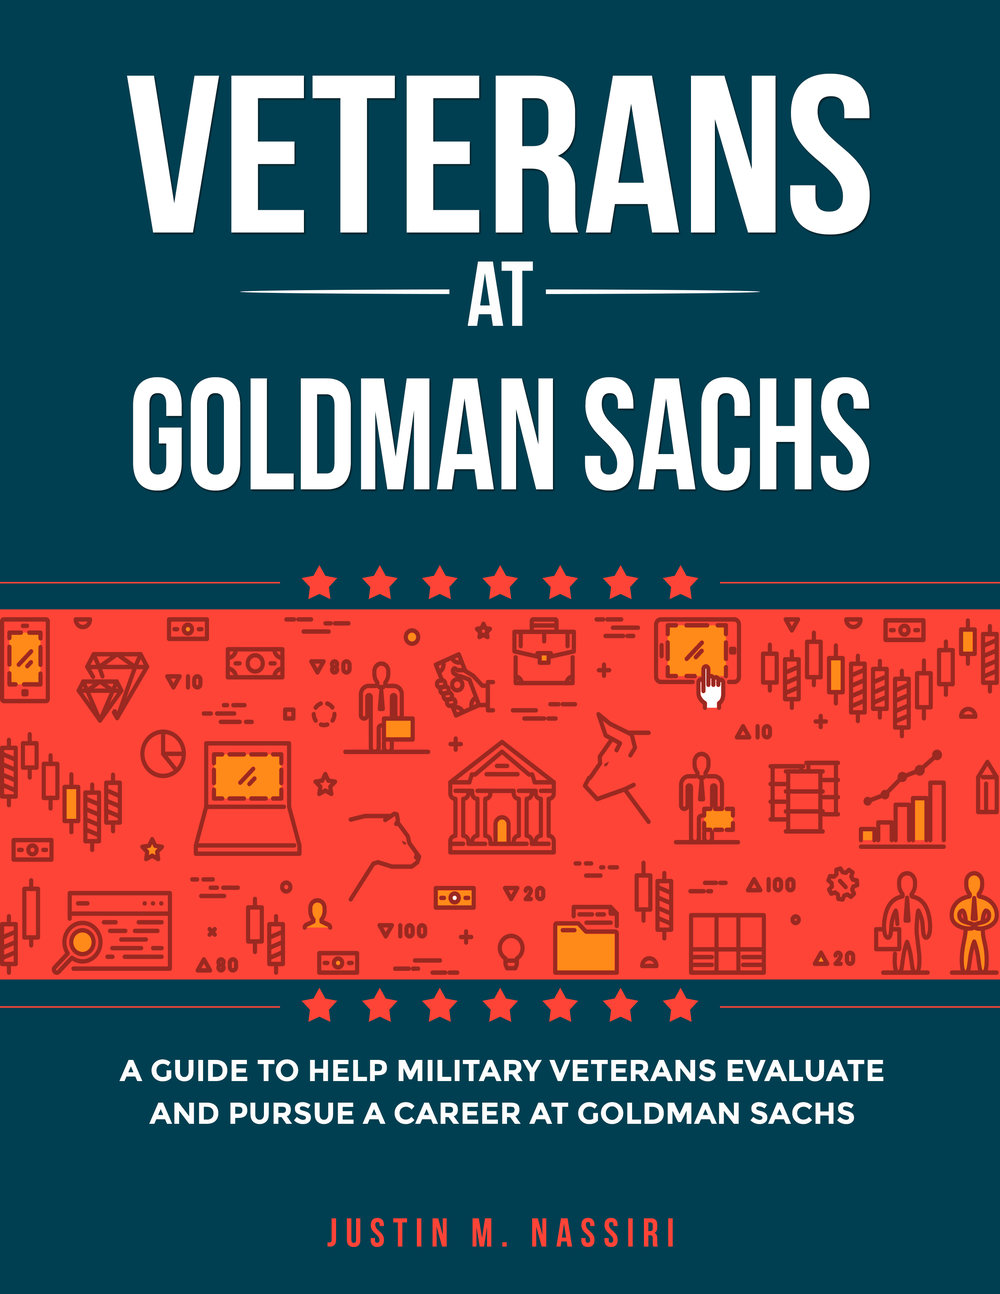 Veterans_at_Goldman_Sachs.jpg